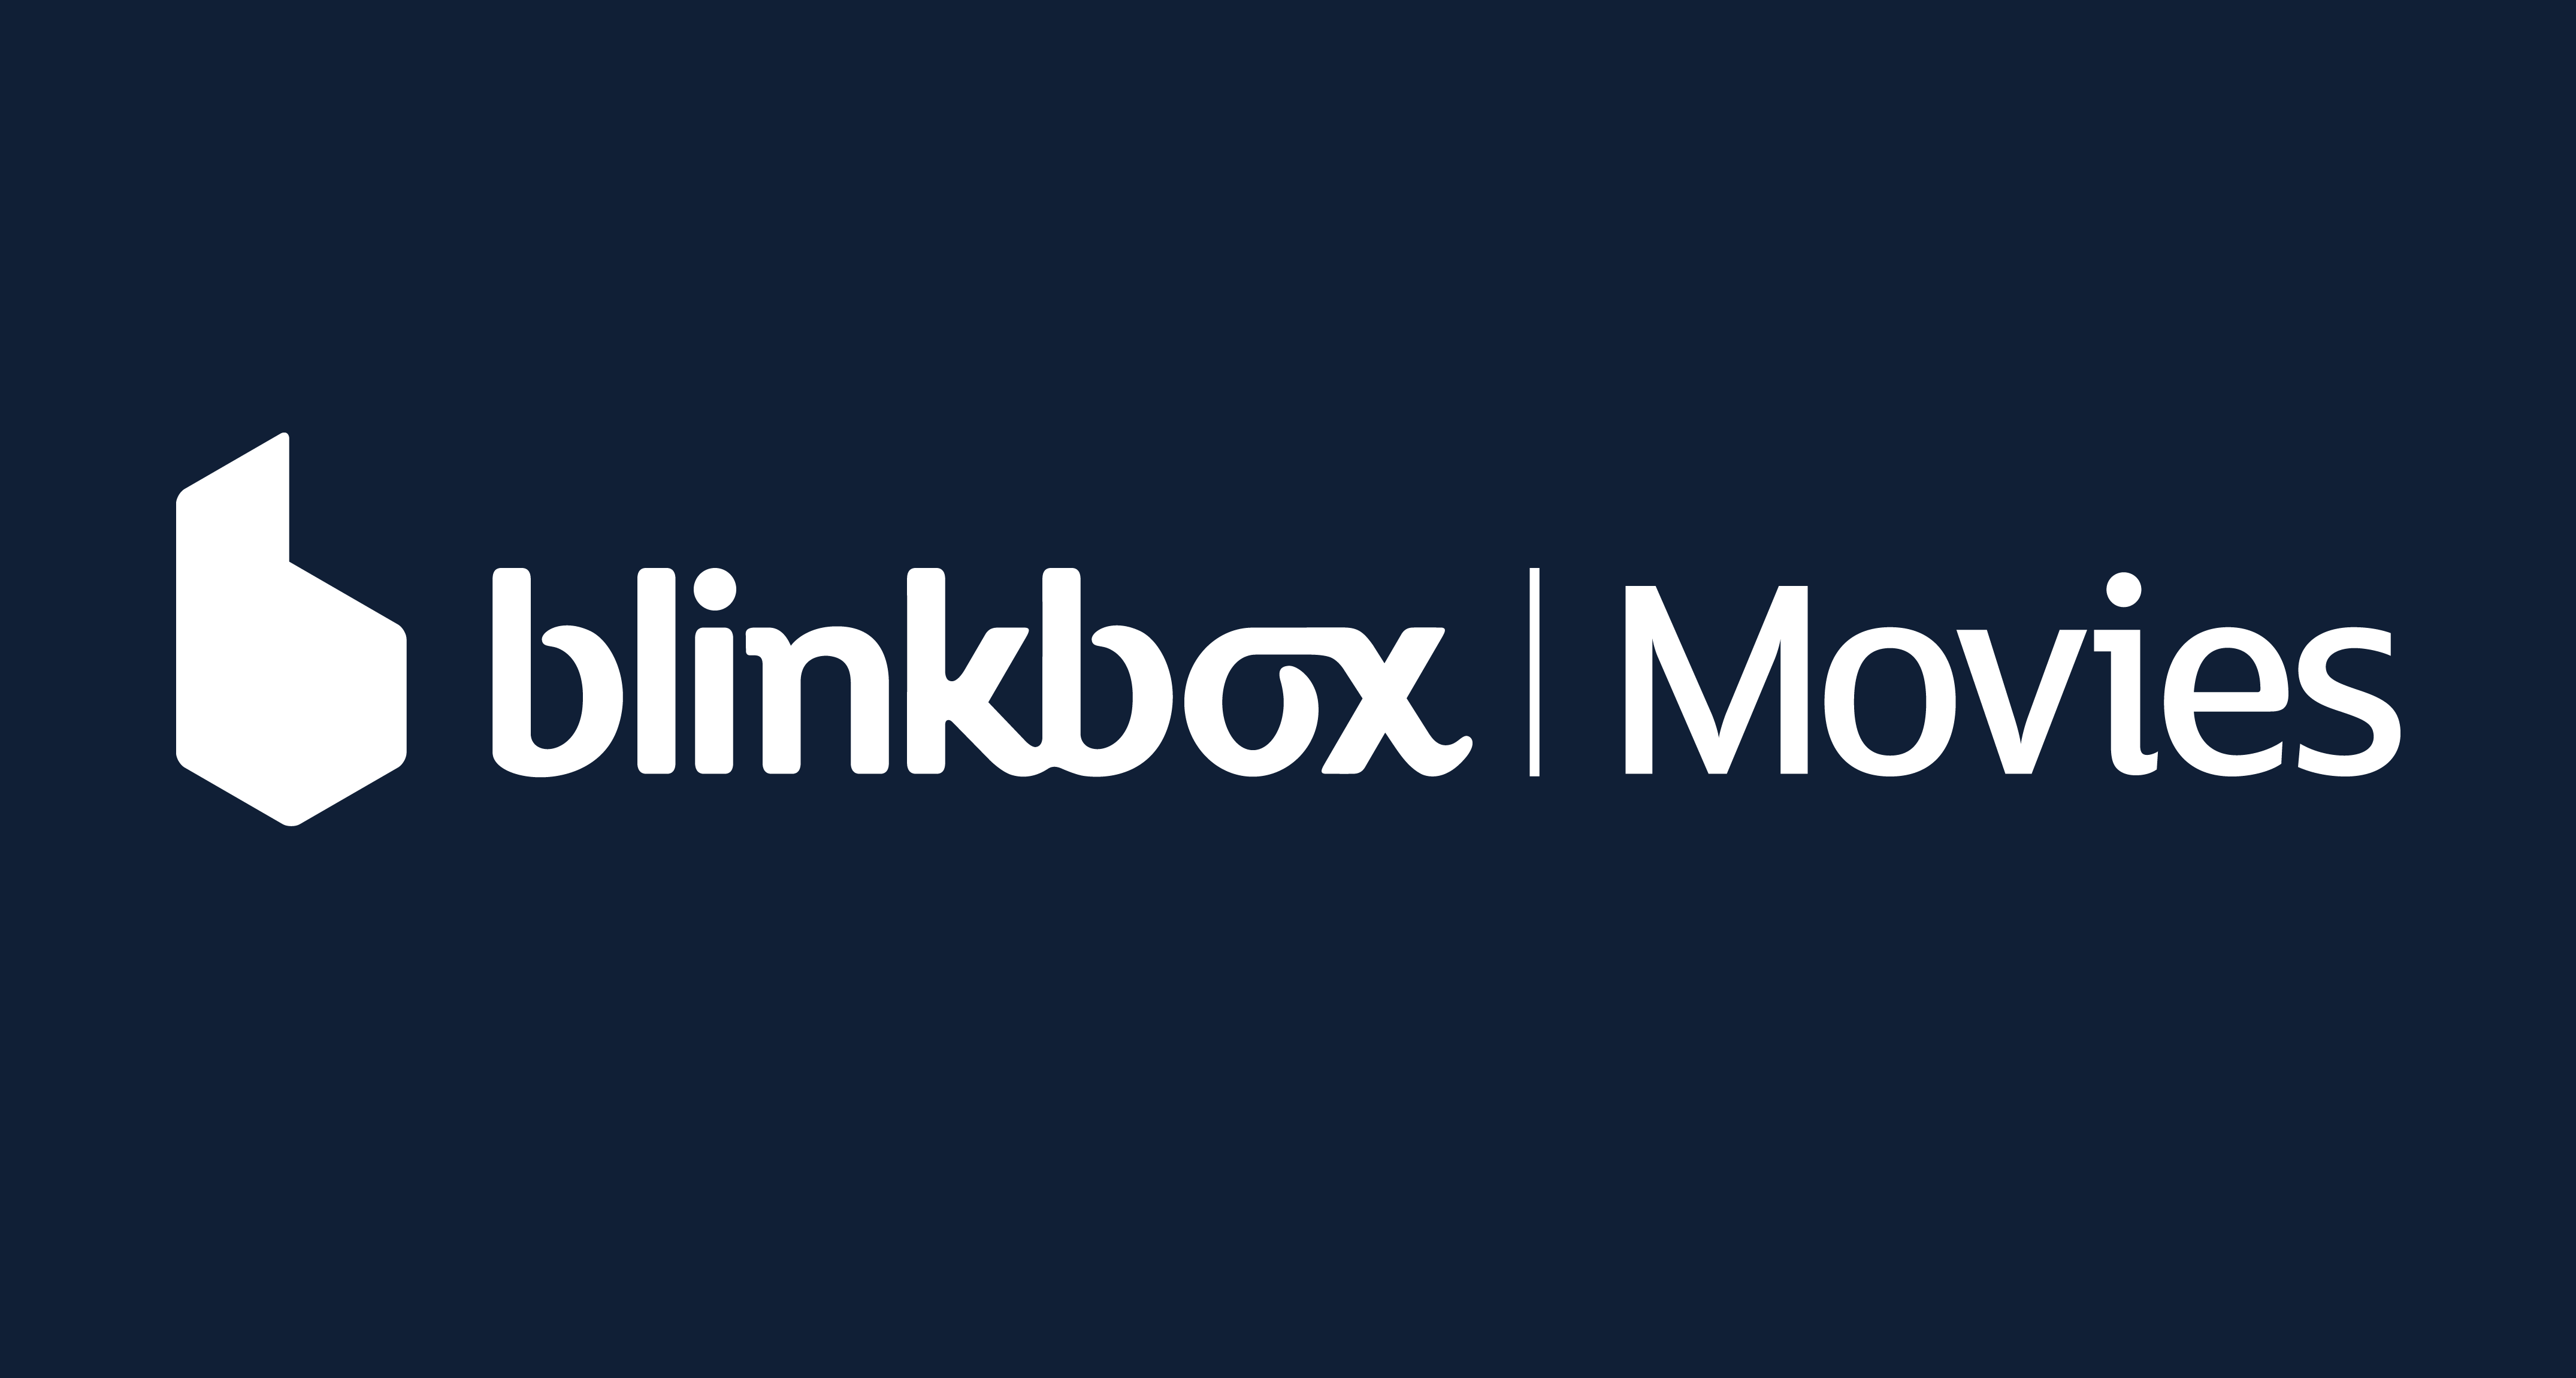 Vodafone In Talks To Buy Blinkbox From Tesco